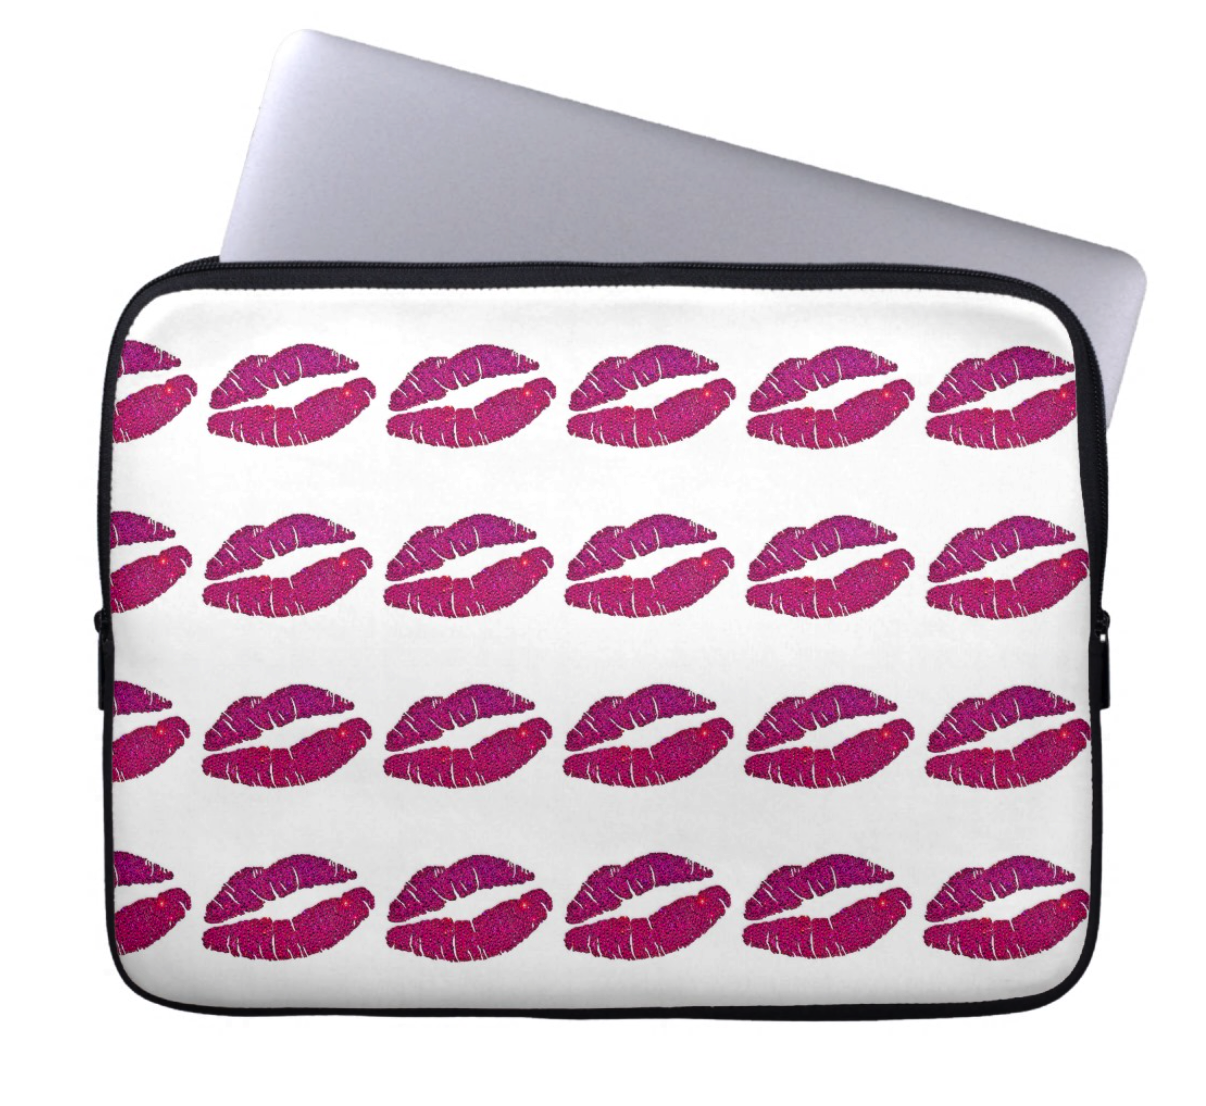 Laptop Sleeve - Pink Lips - CRYSTAHHLED